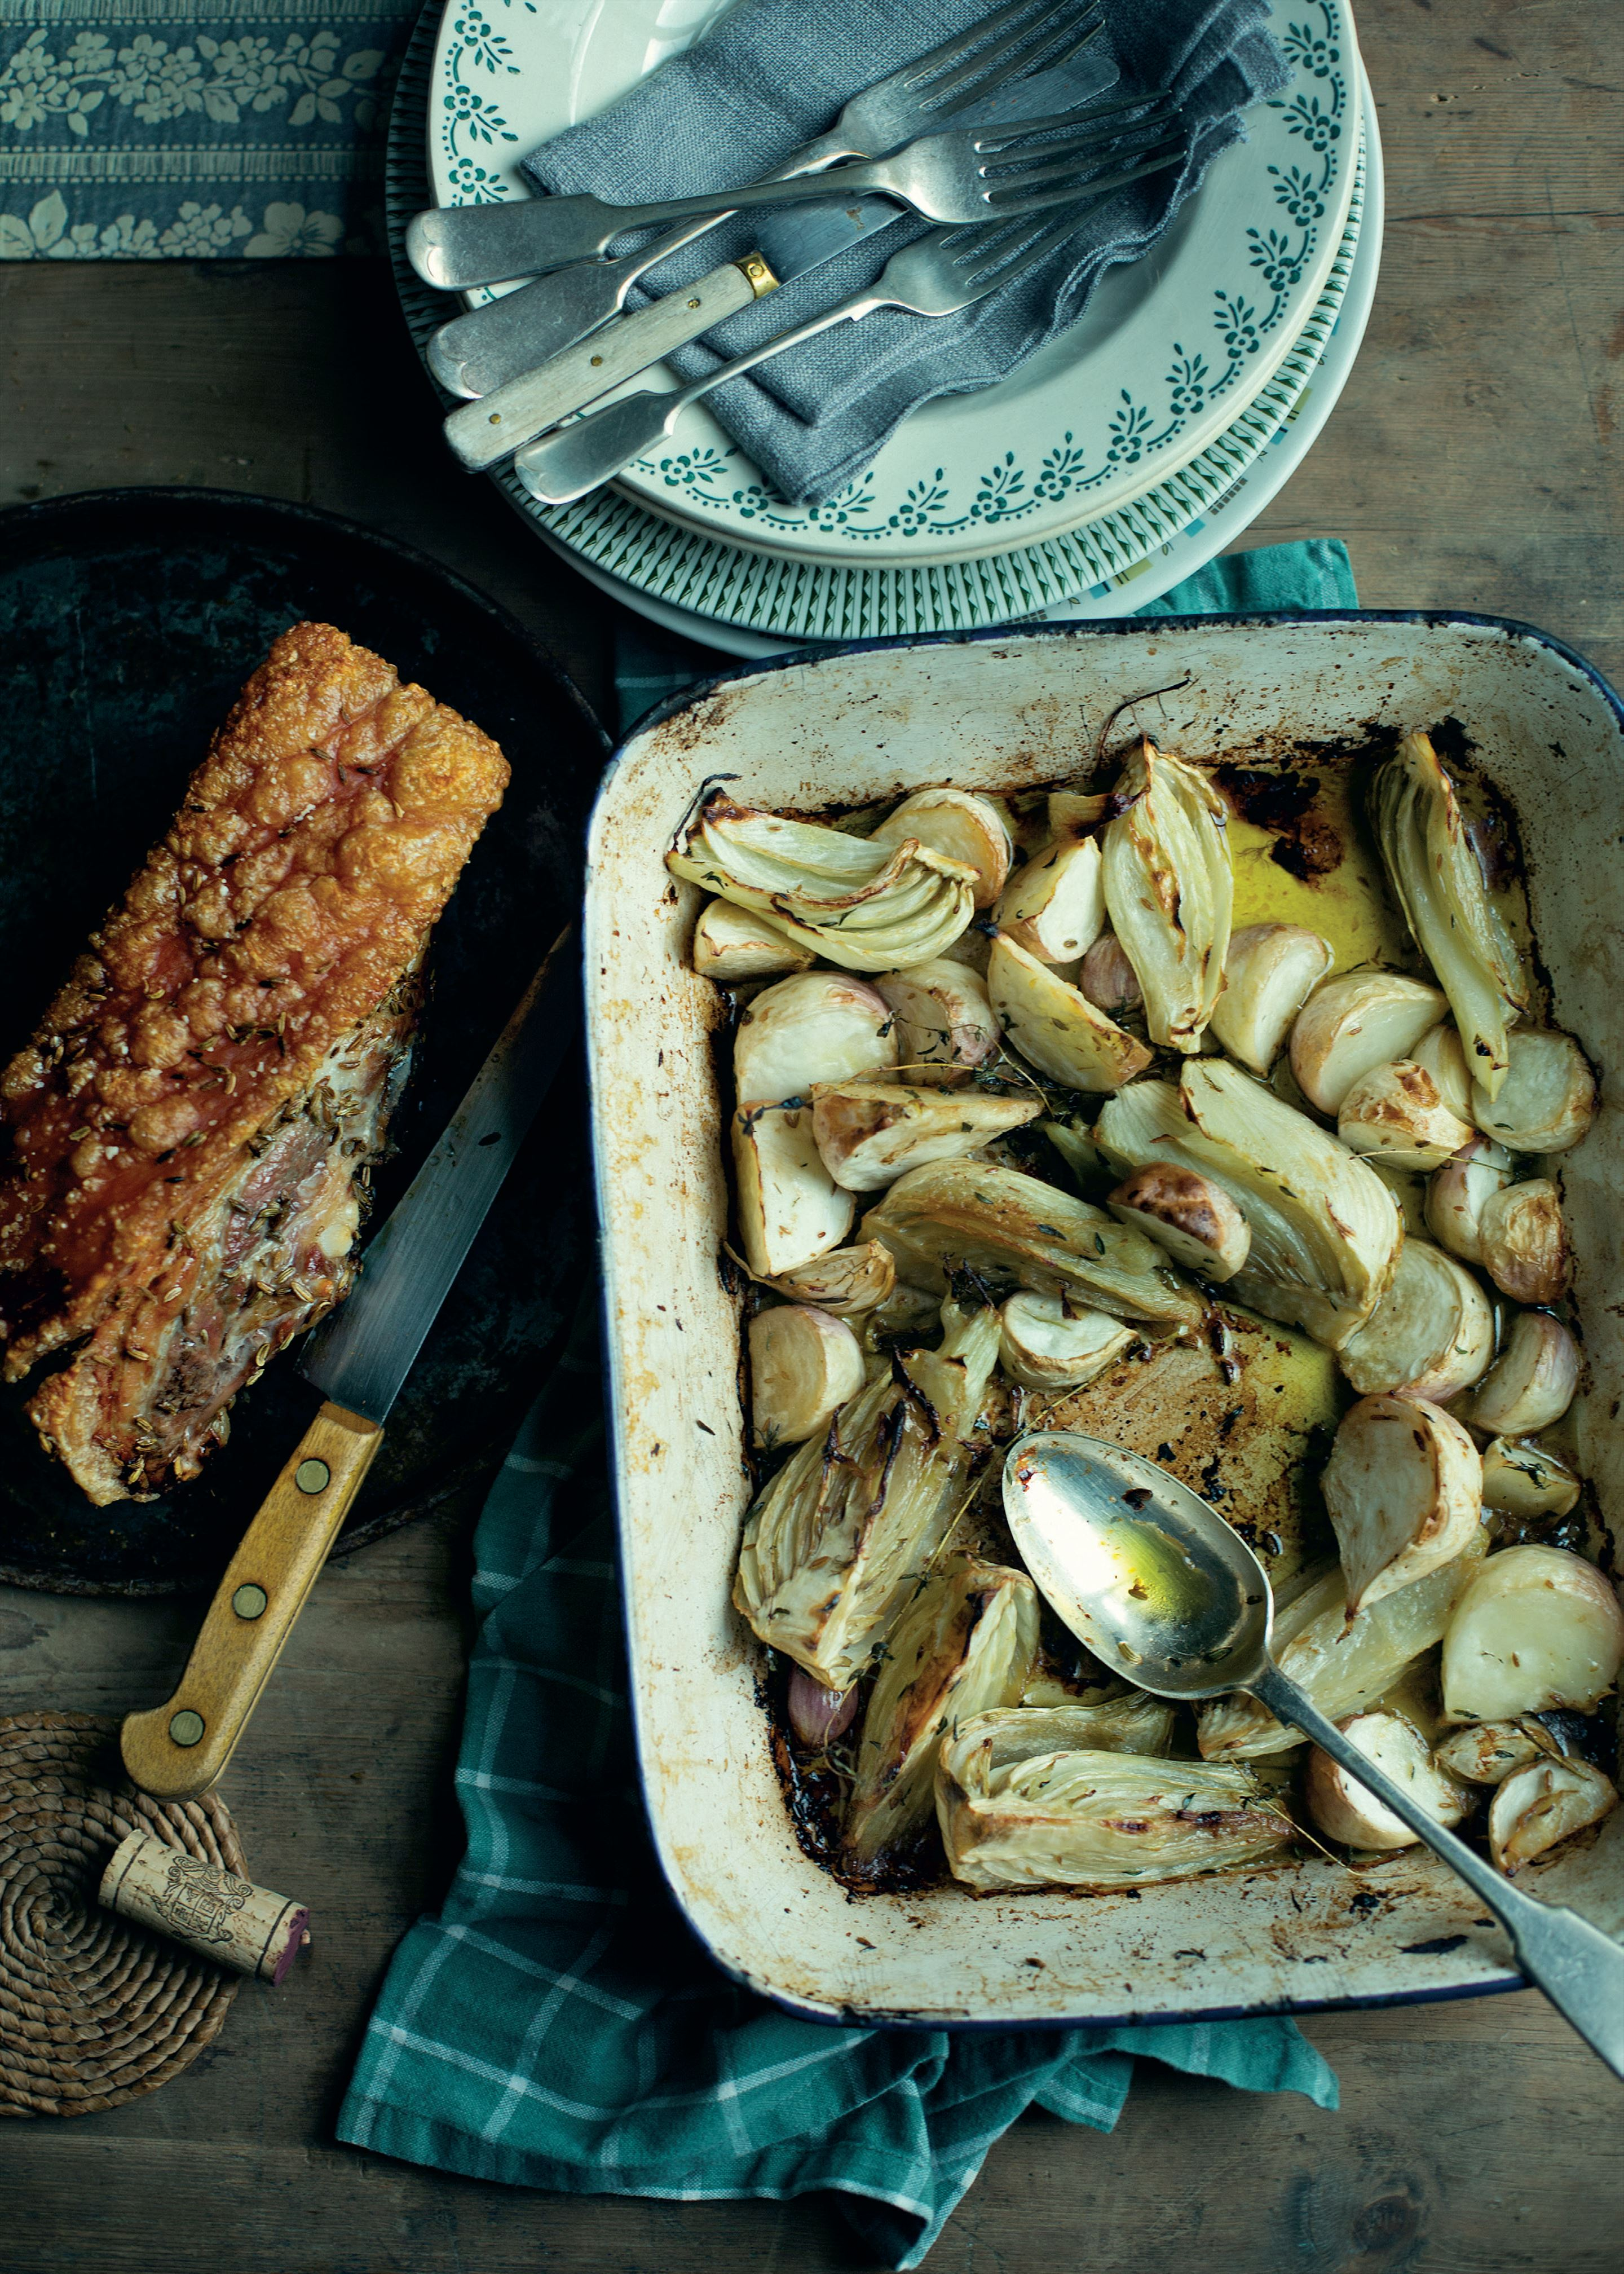 Roast pork belly with fennel and turnip